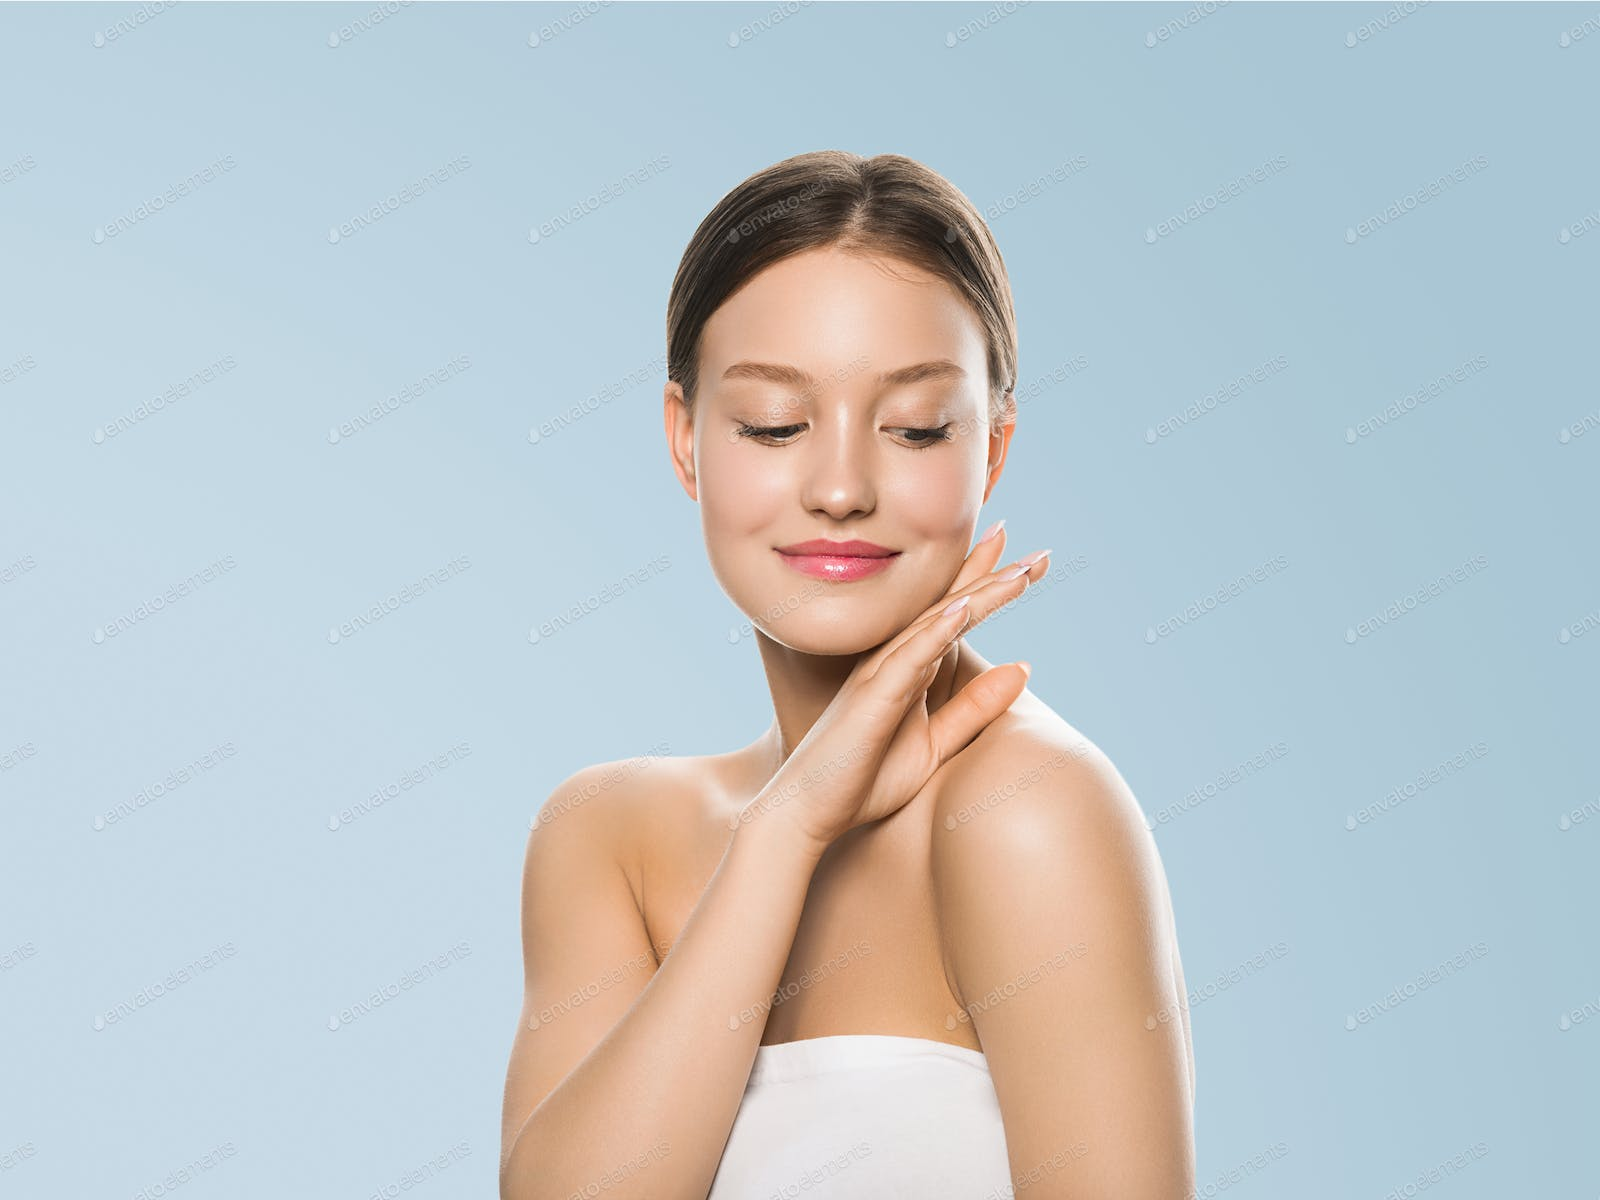 Skin Care Woman Beauty Natural Make Up Photo By Kiraliffe On Envato Elements